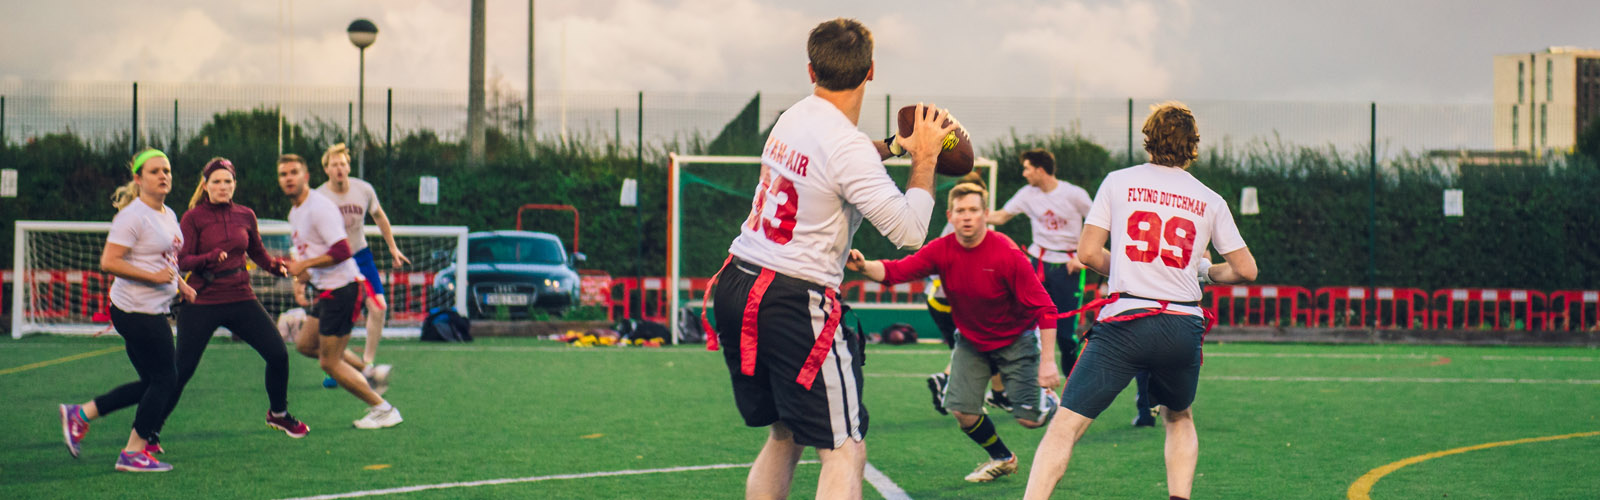 flag football london